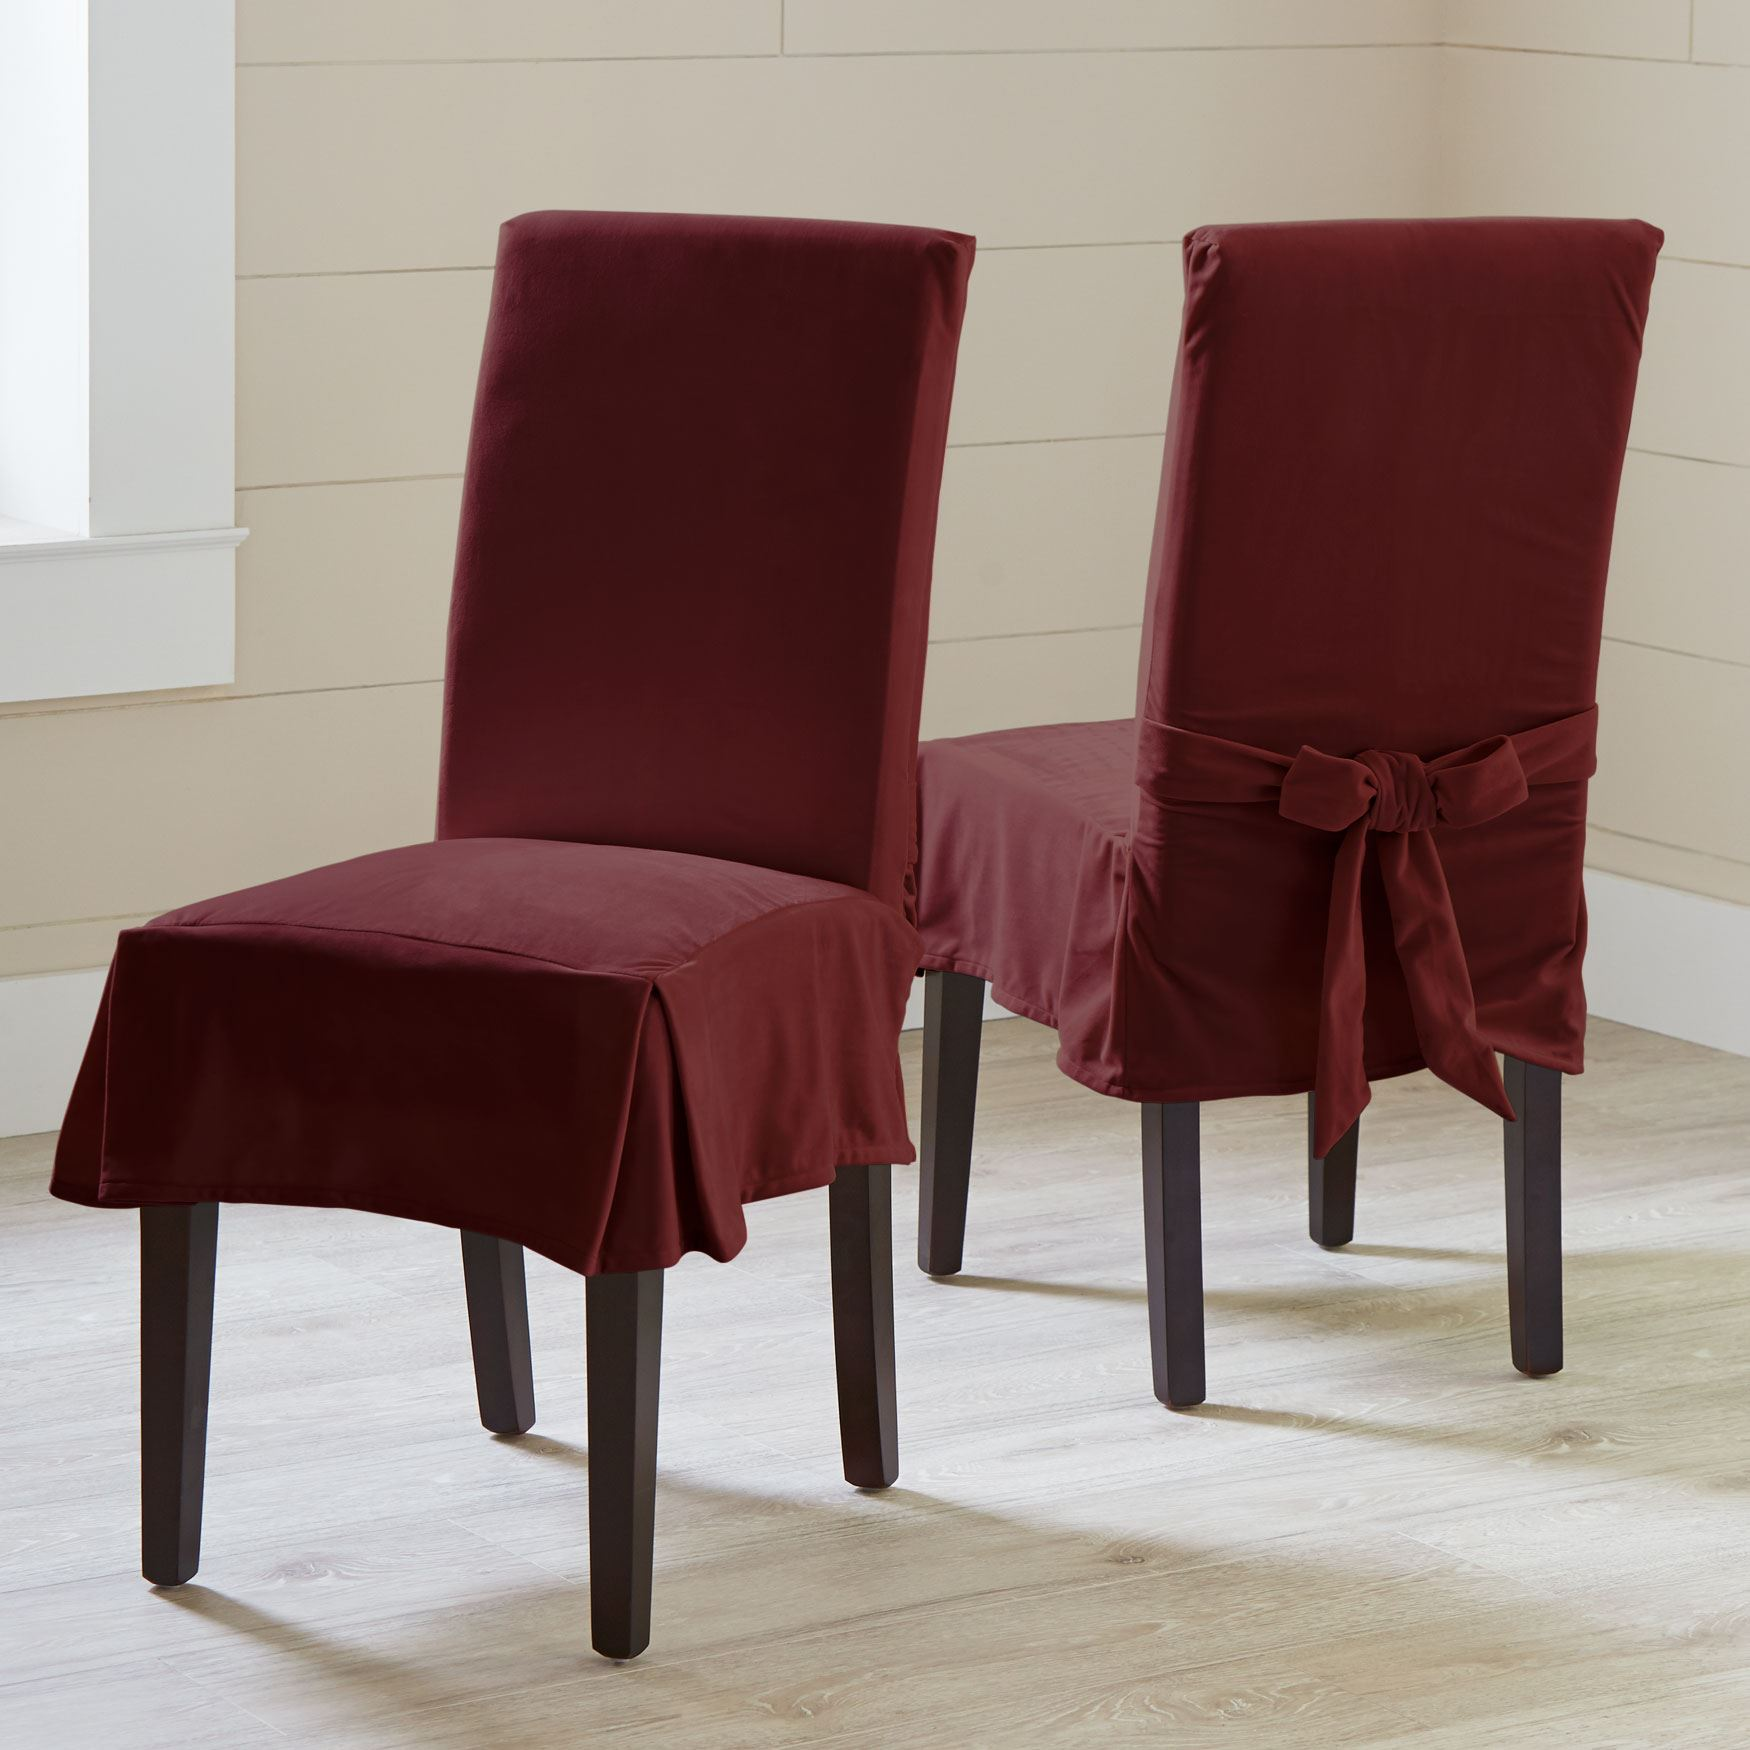 brylanehome chair covers wedding ebay uk venice velvet set of 2 plus size dining room chairs